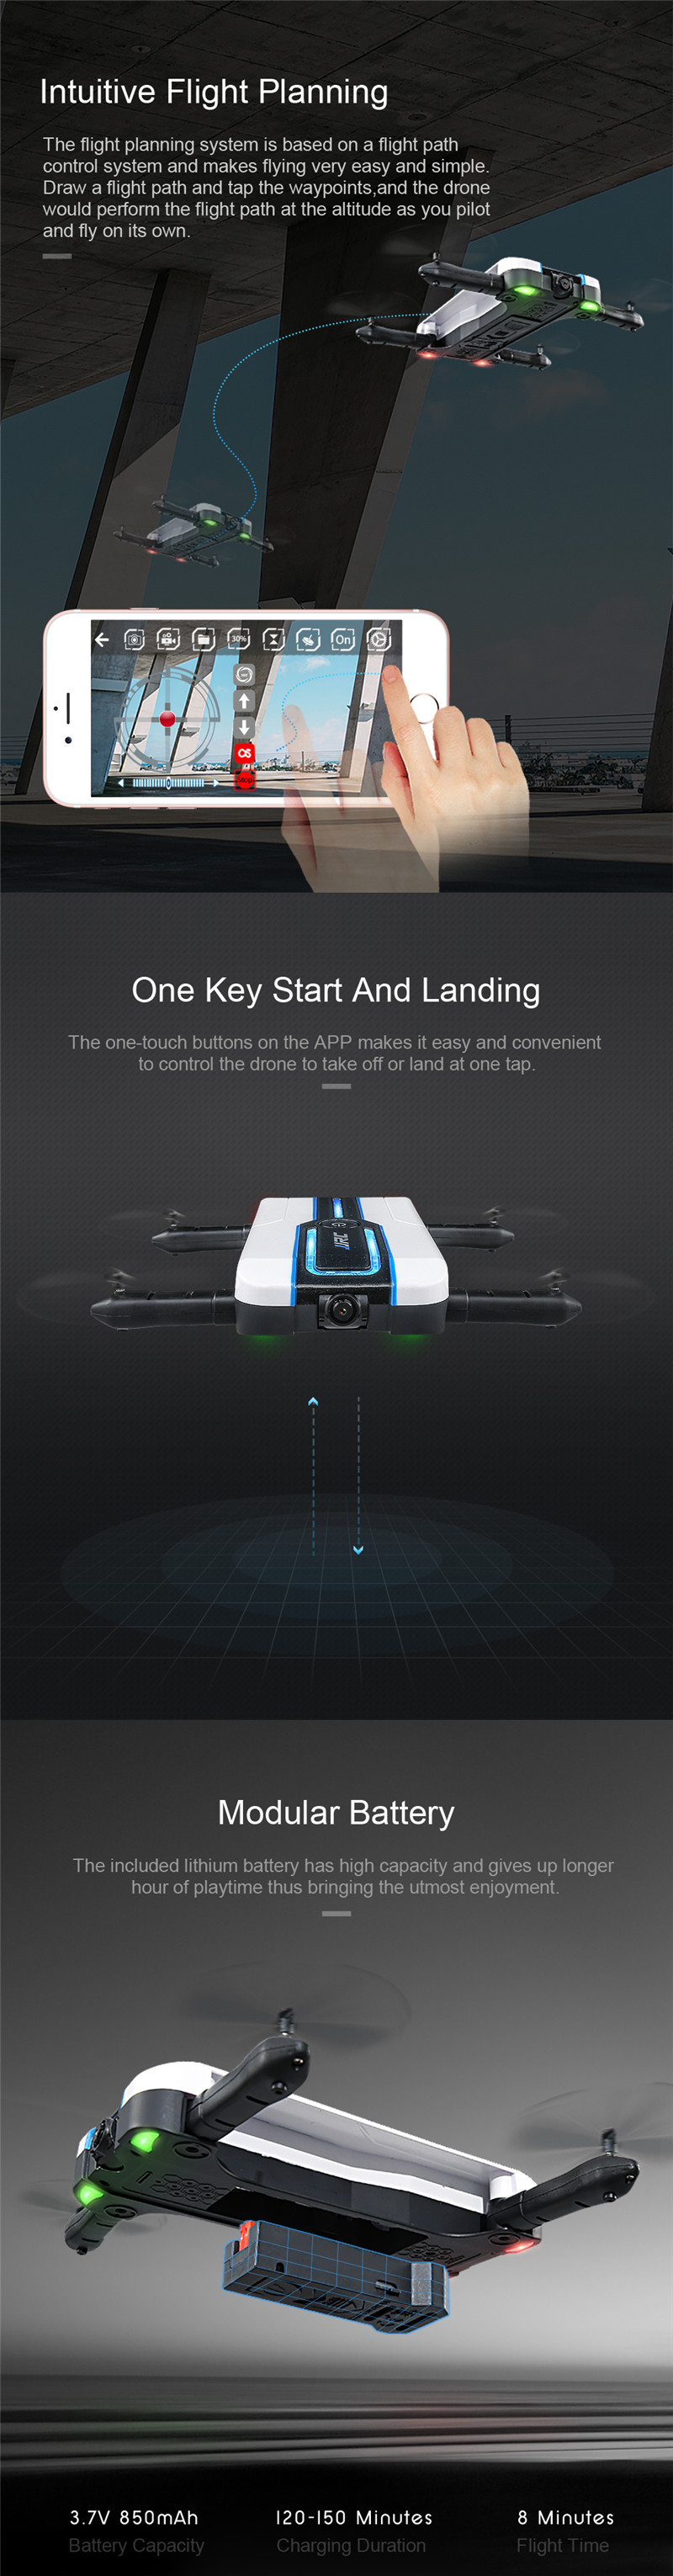 JJRC H61 Spotlight WIFI FPV Foldable Drone With 720P Camera Optical Flow Positioning RC Quadcopter